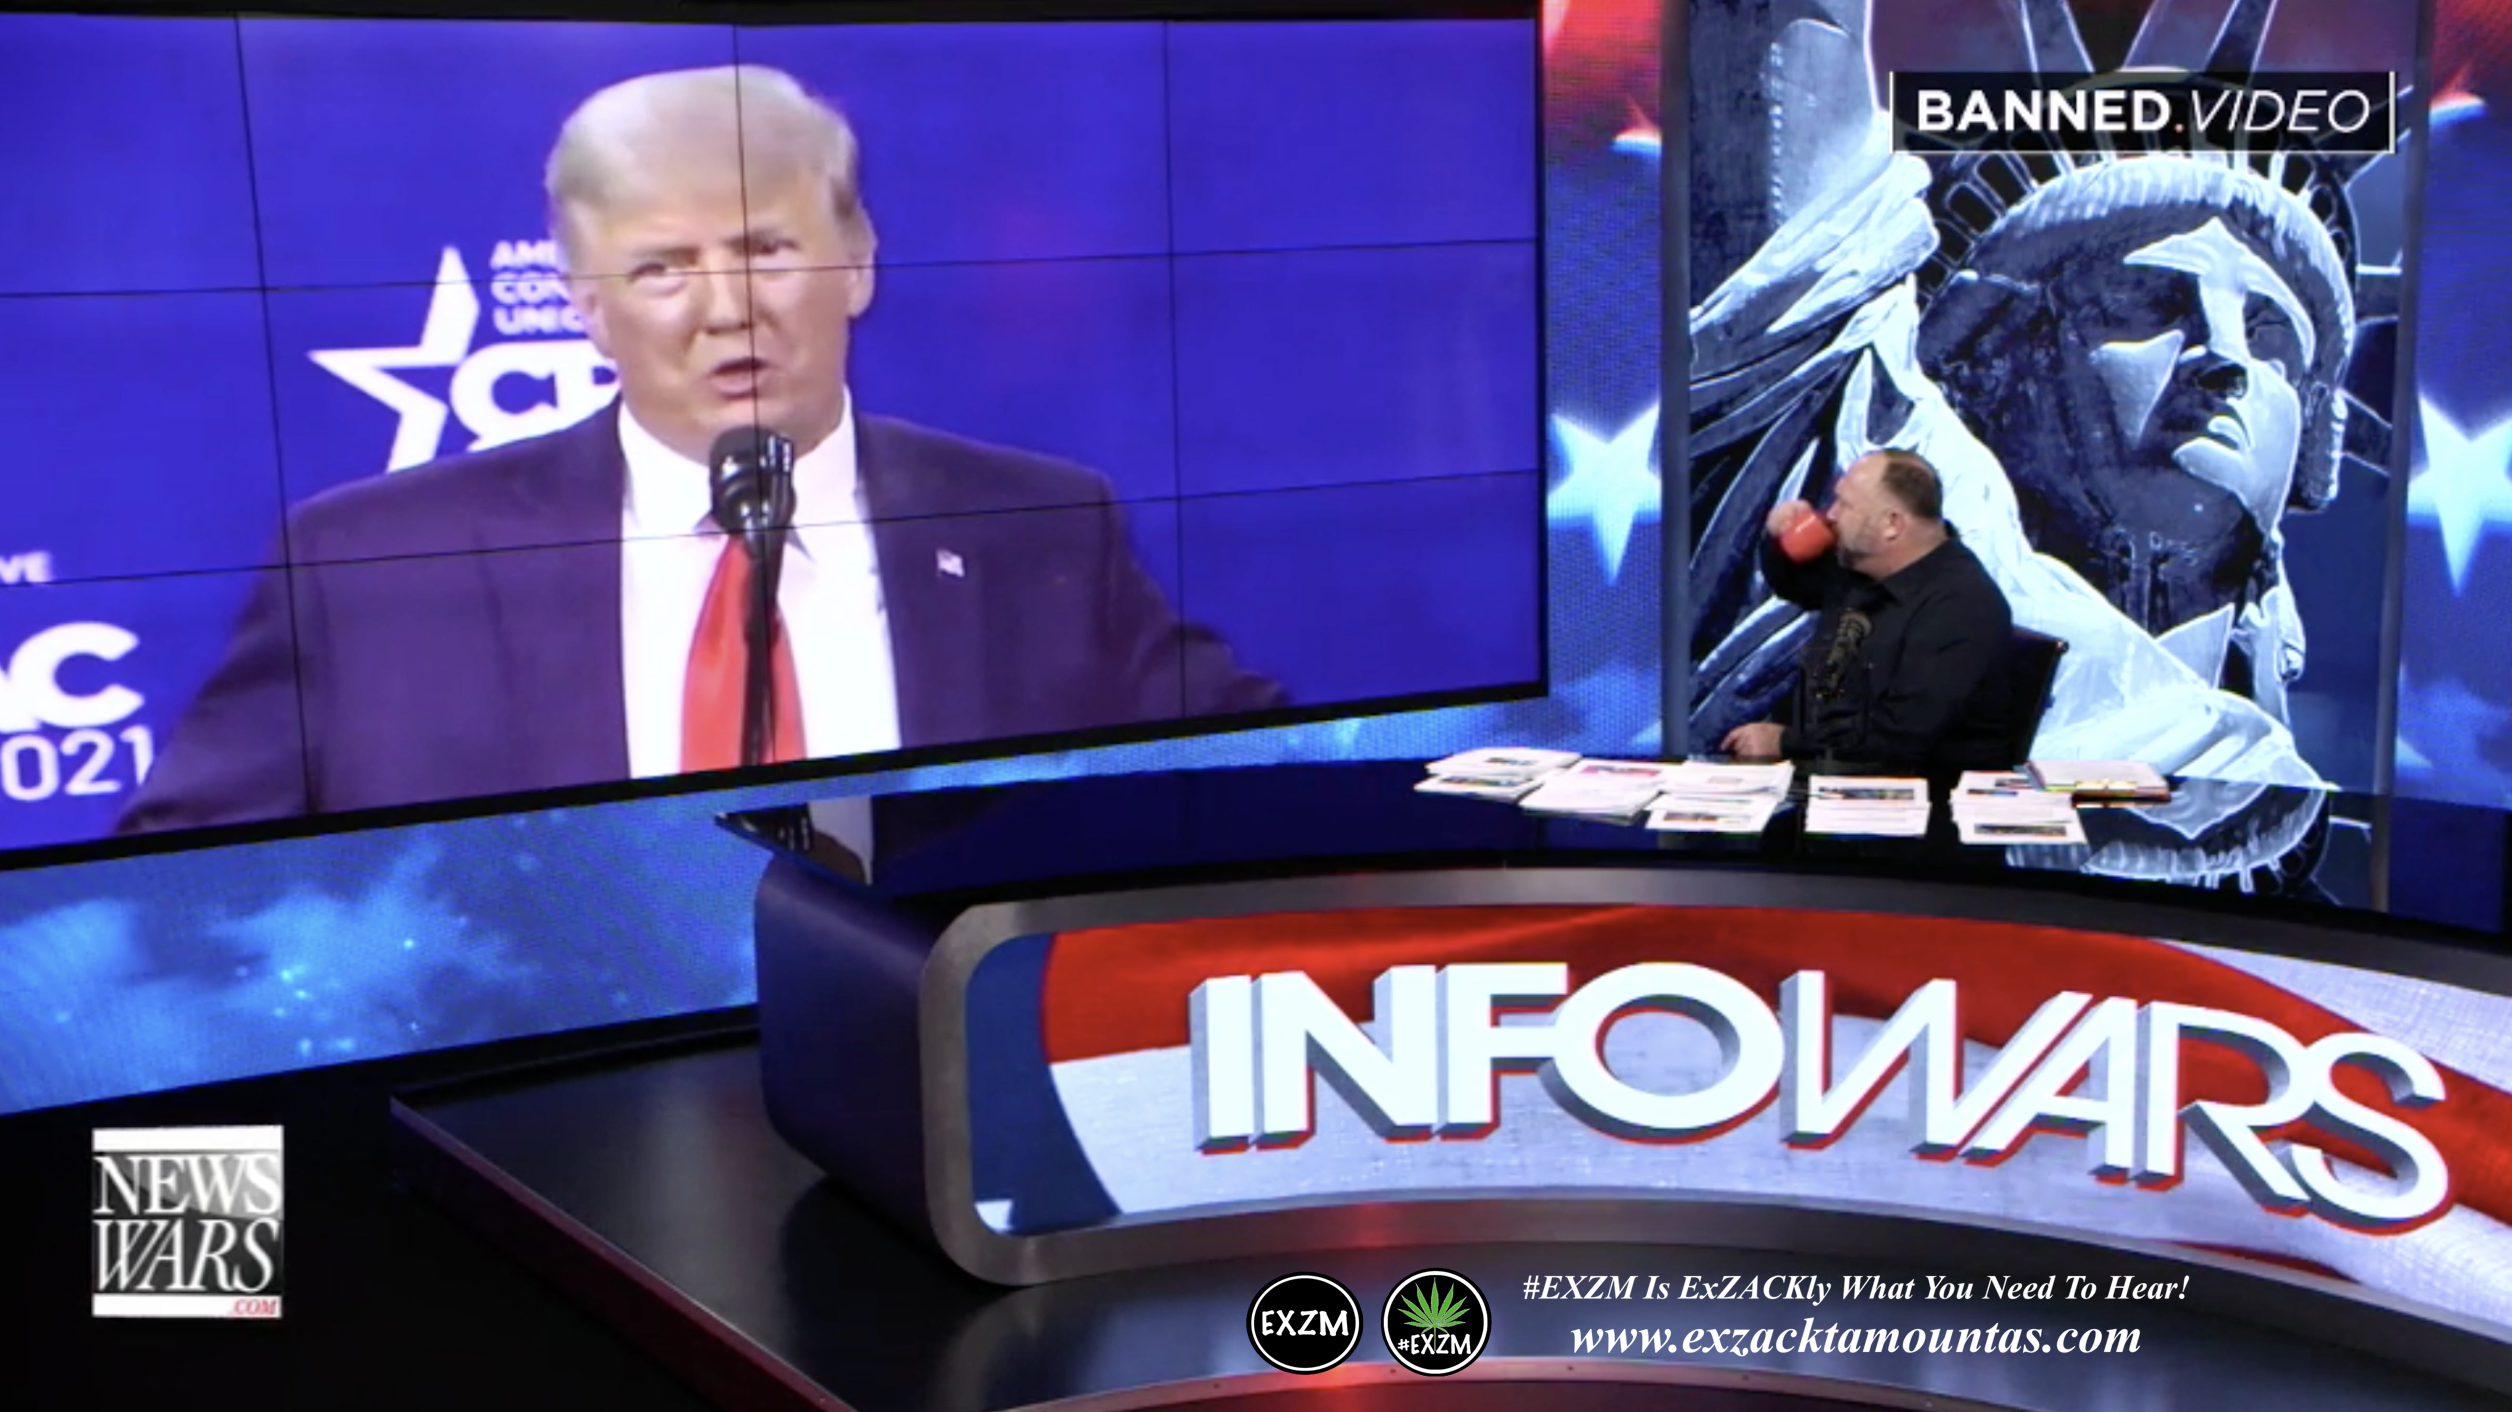 Alex Jones Live Infowars Studio President Donald Trump CPAC EXZM Zack Mount February 28th 2021 copy